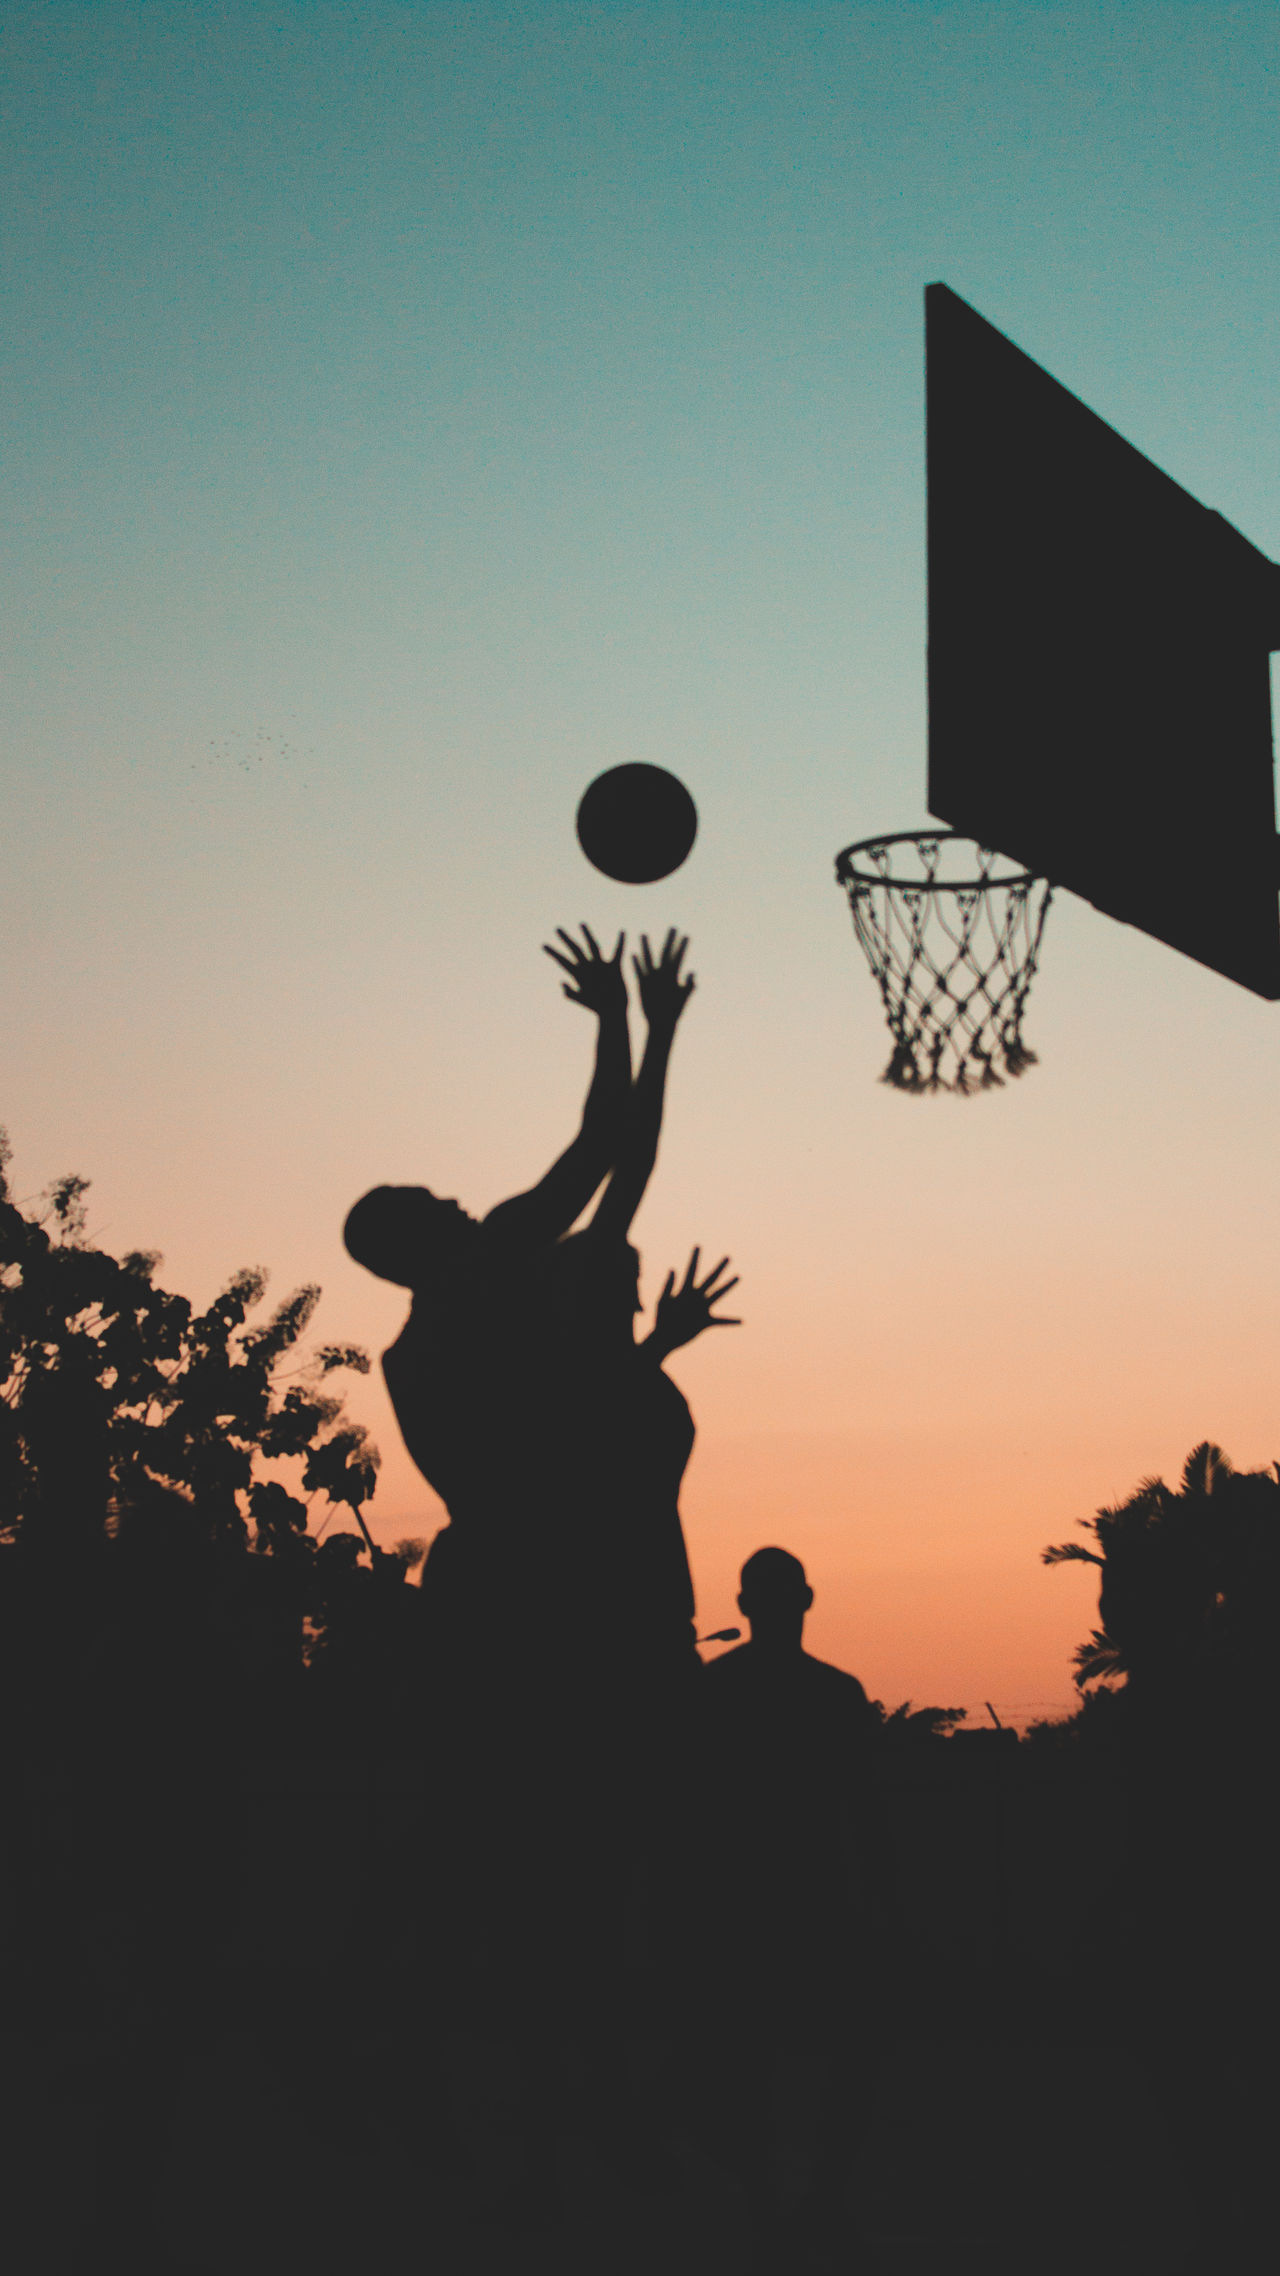 Silhouette people playing basketball during sunset